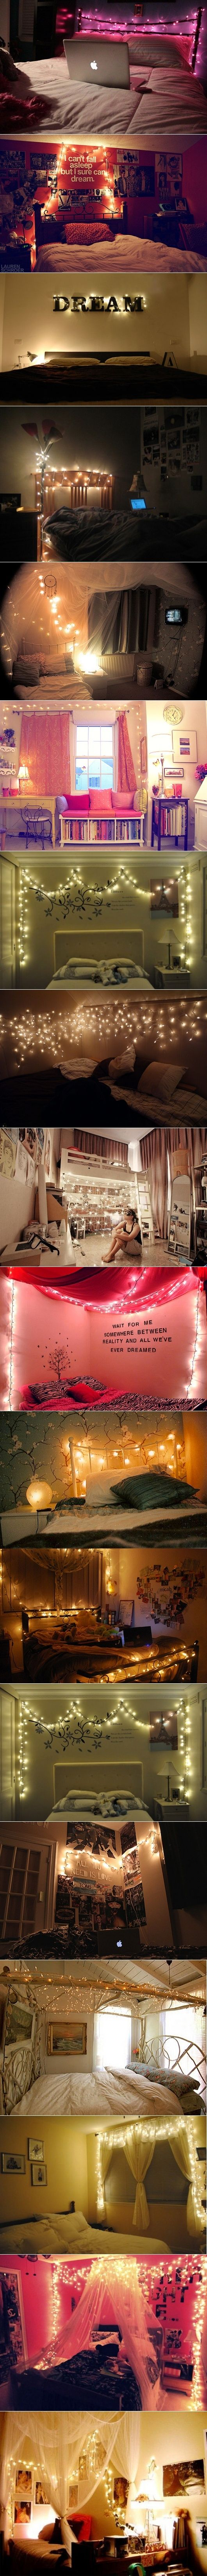 Pink christmas lights in bedroom - Great Ideas For Making Bedrooms Personal For Teens Young Adults Christmas Lights